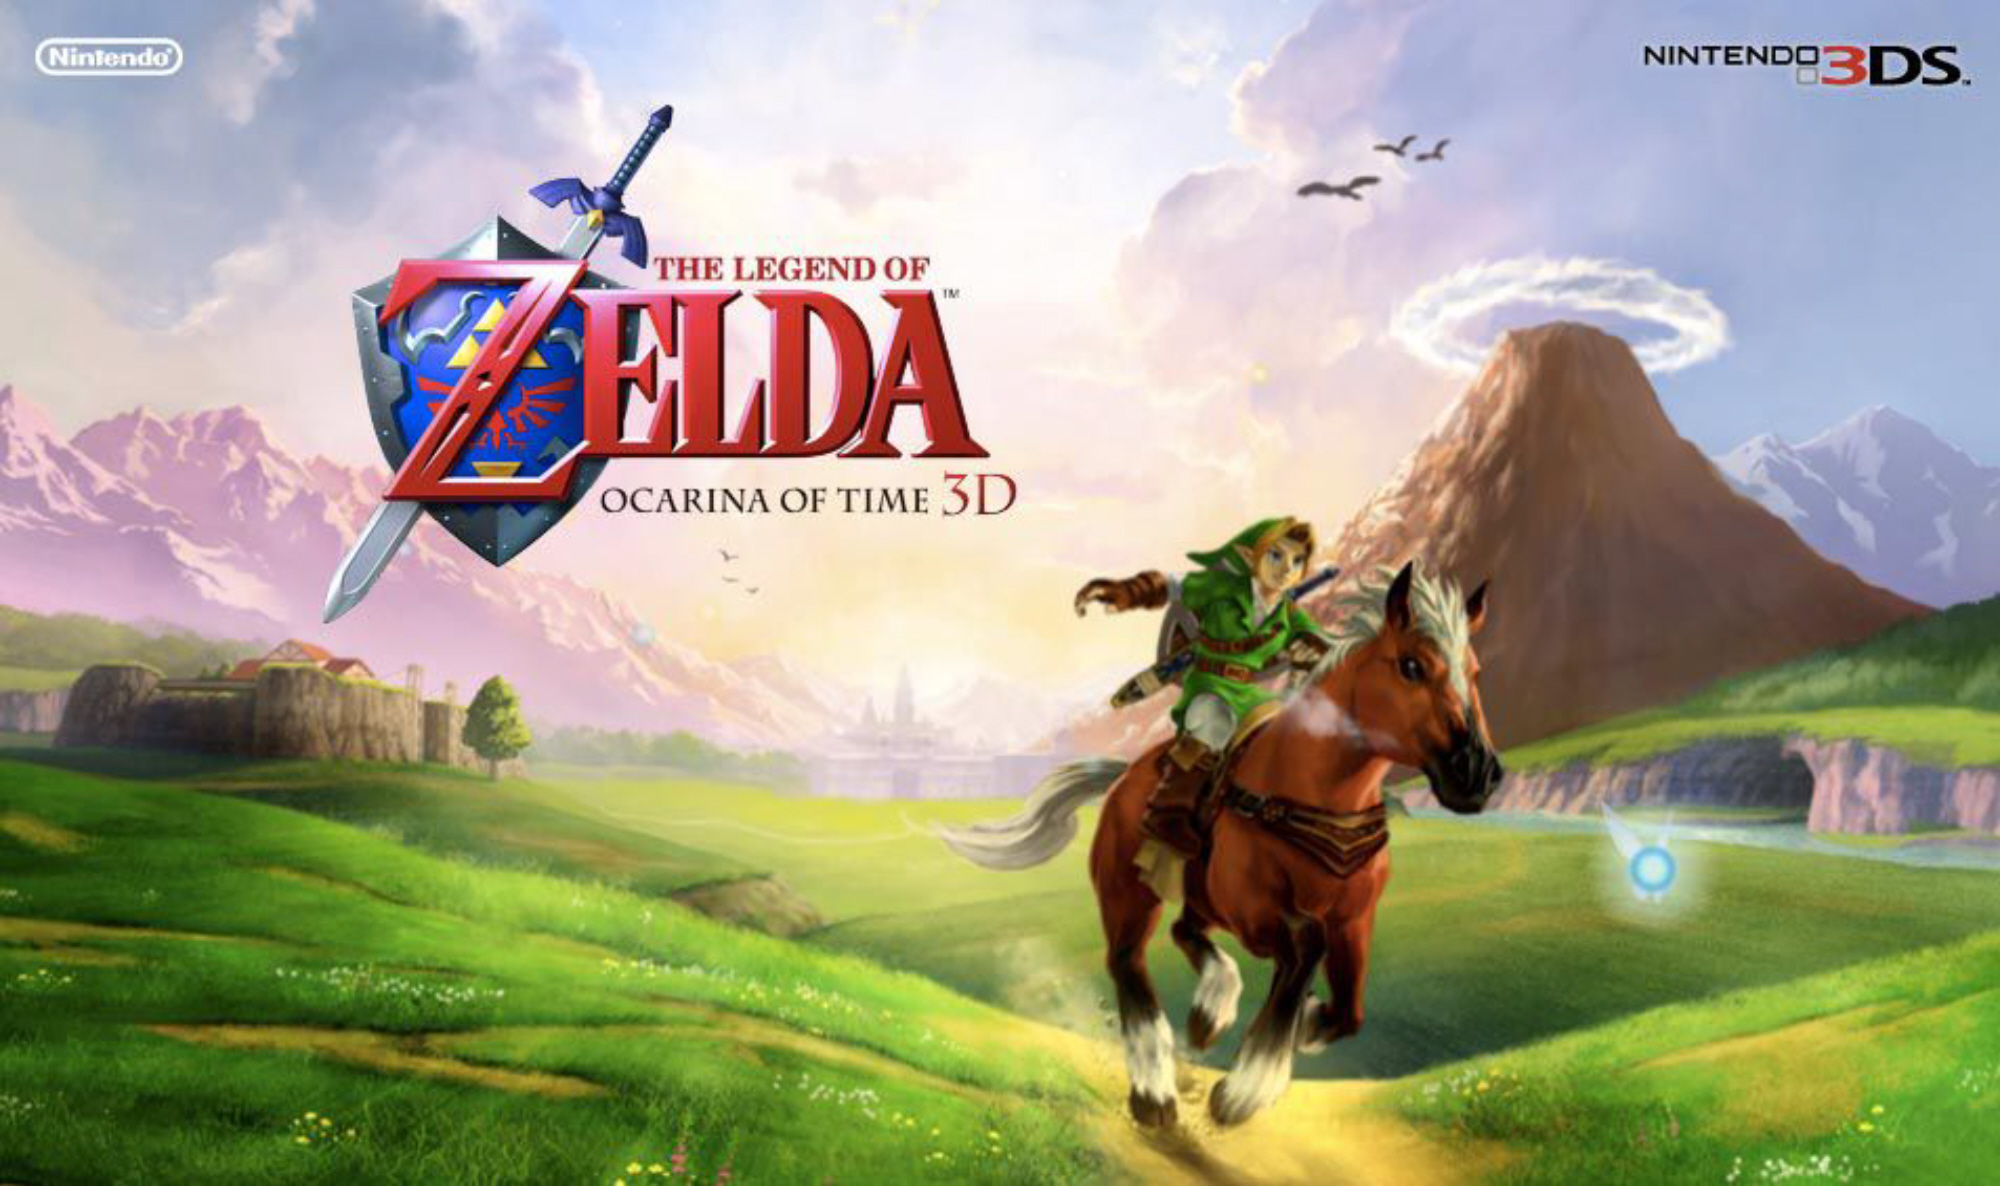 Bildergebnis für the legend of zelda ocarina of time